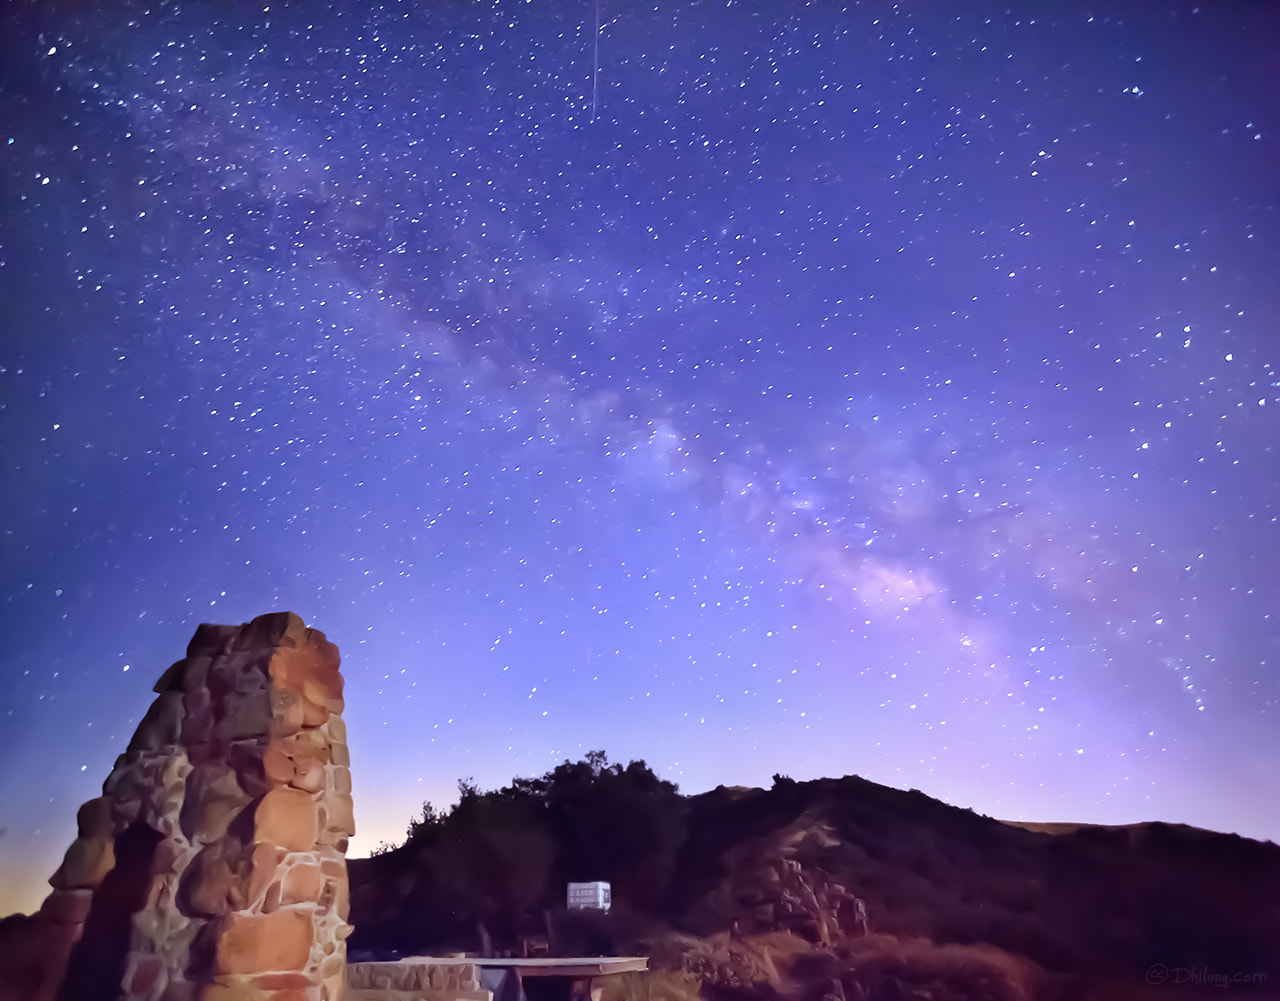 Photograph Knapp's Castle with the Milky Way by Dhilung Kirat on 500px